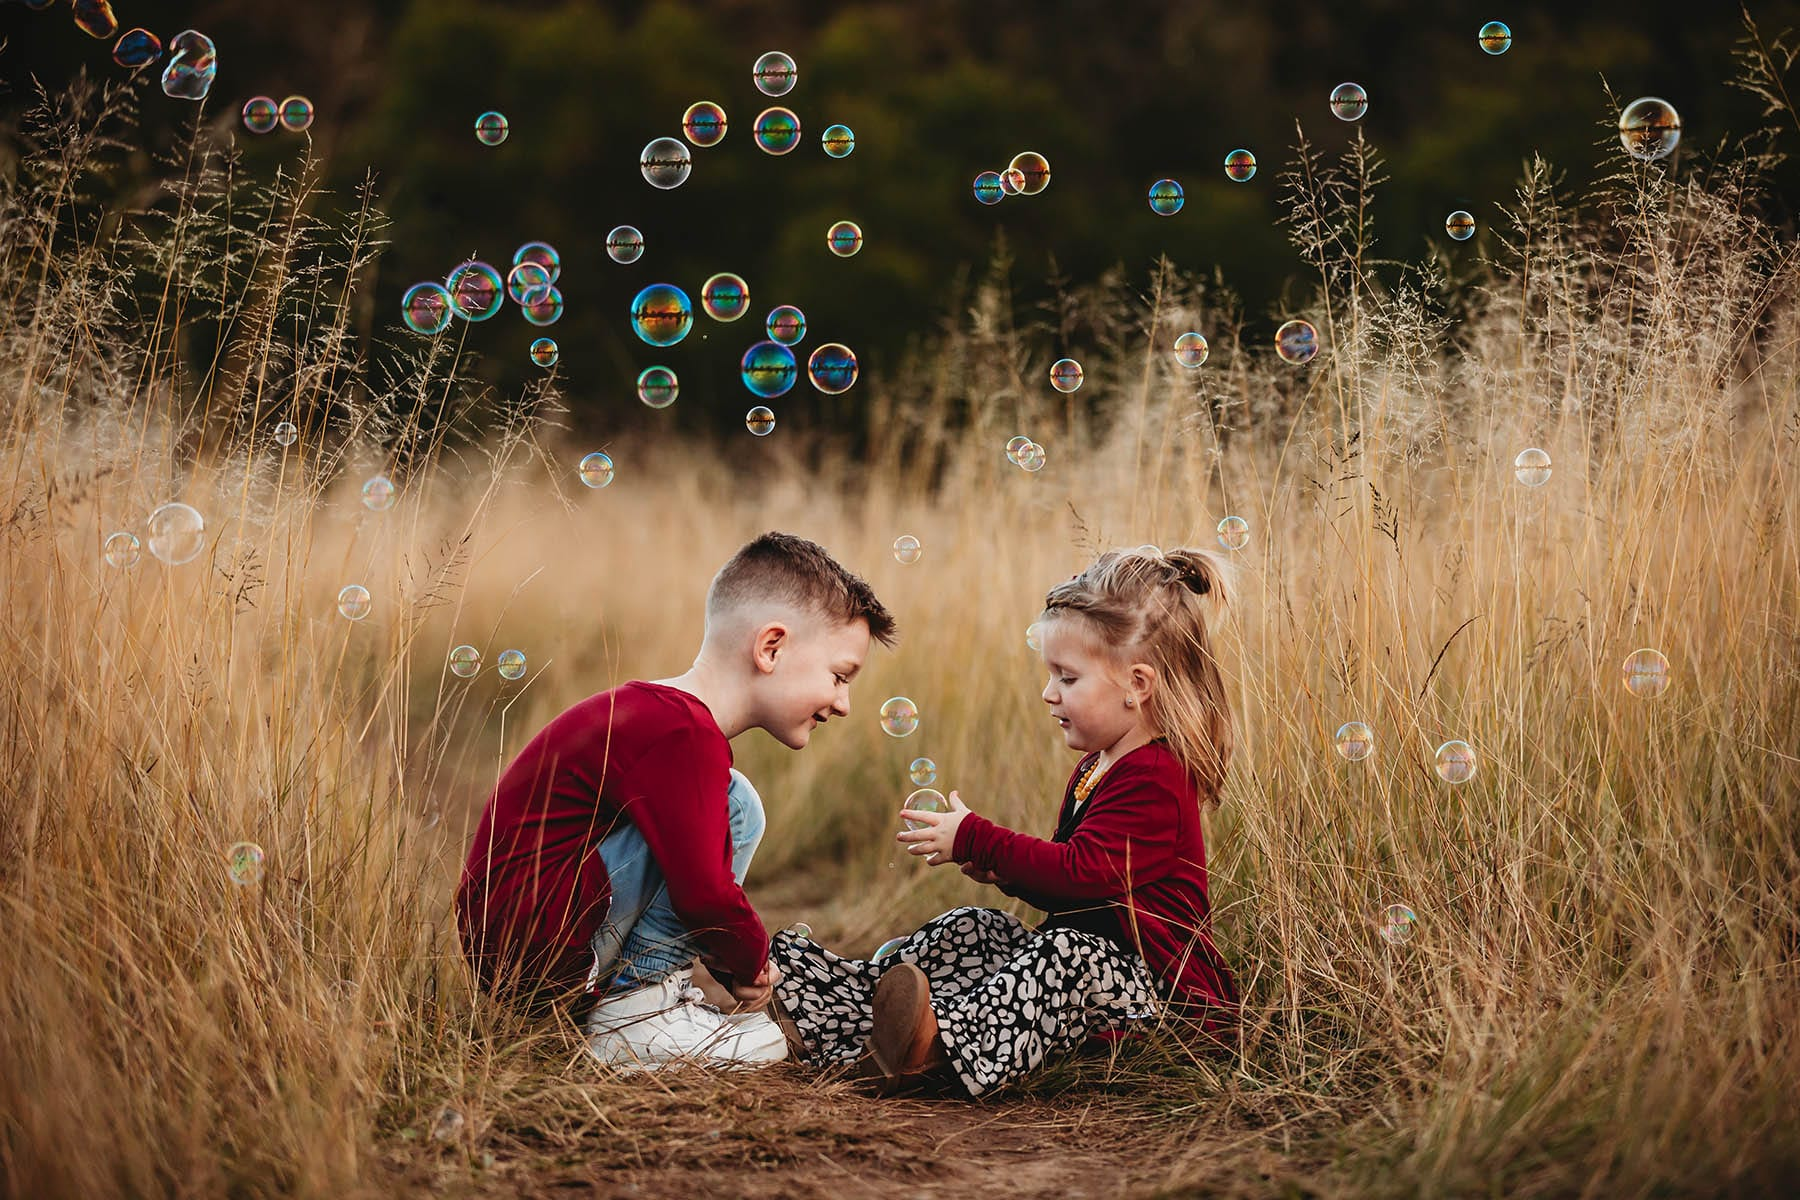 Siblings sitting on a dirt track in long grass playing with bubbles at sunset